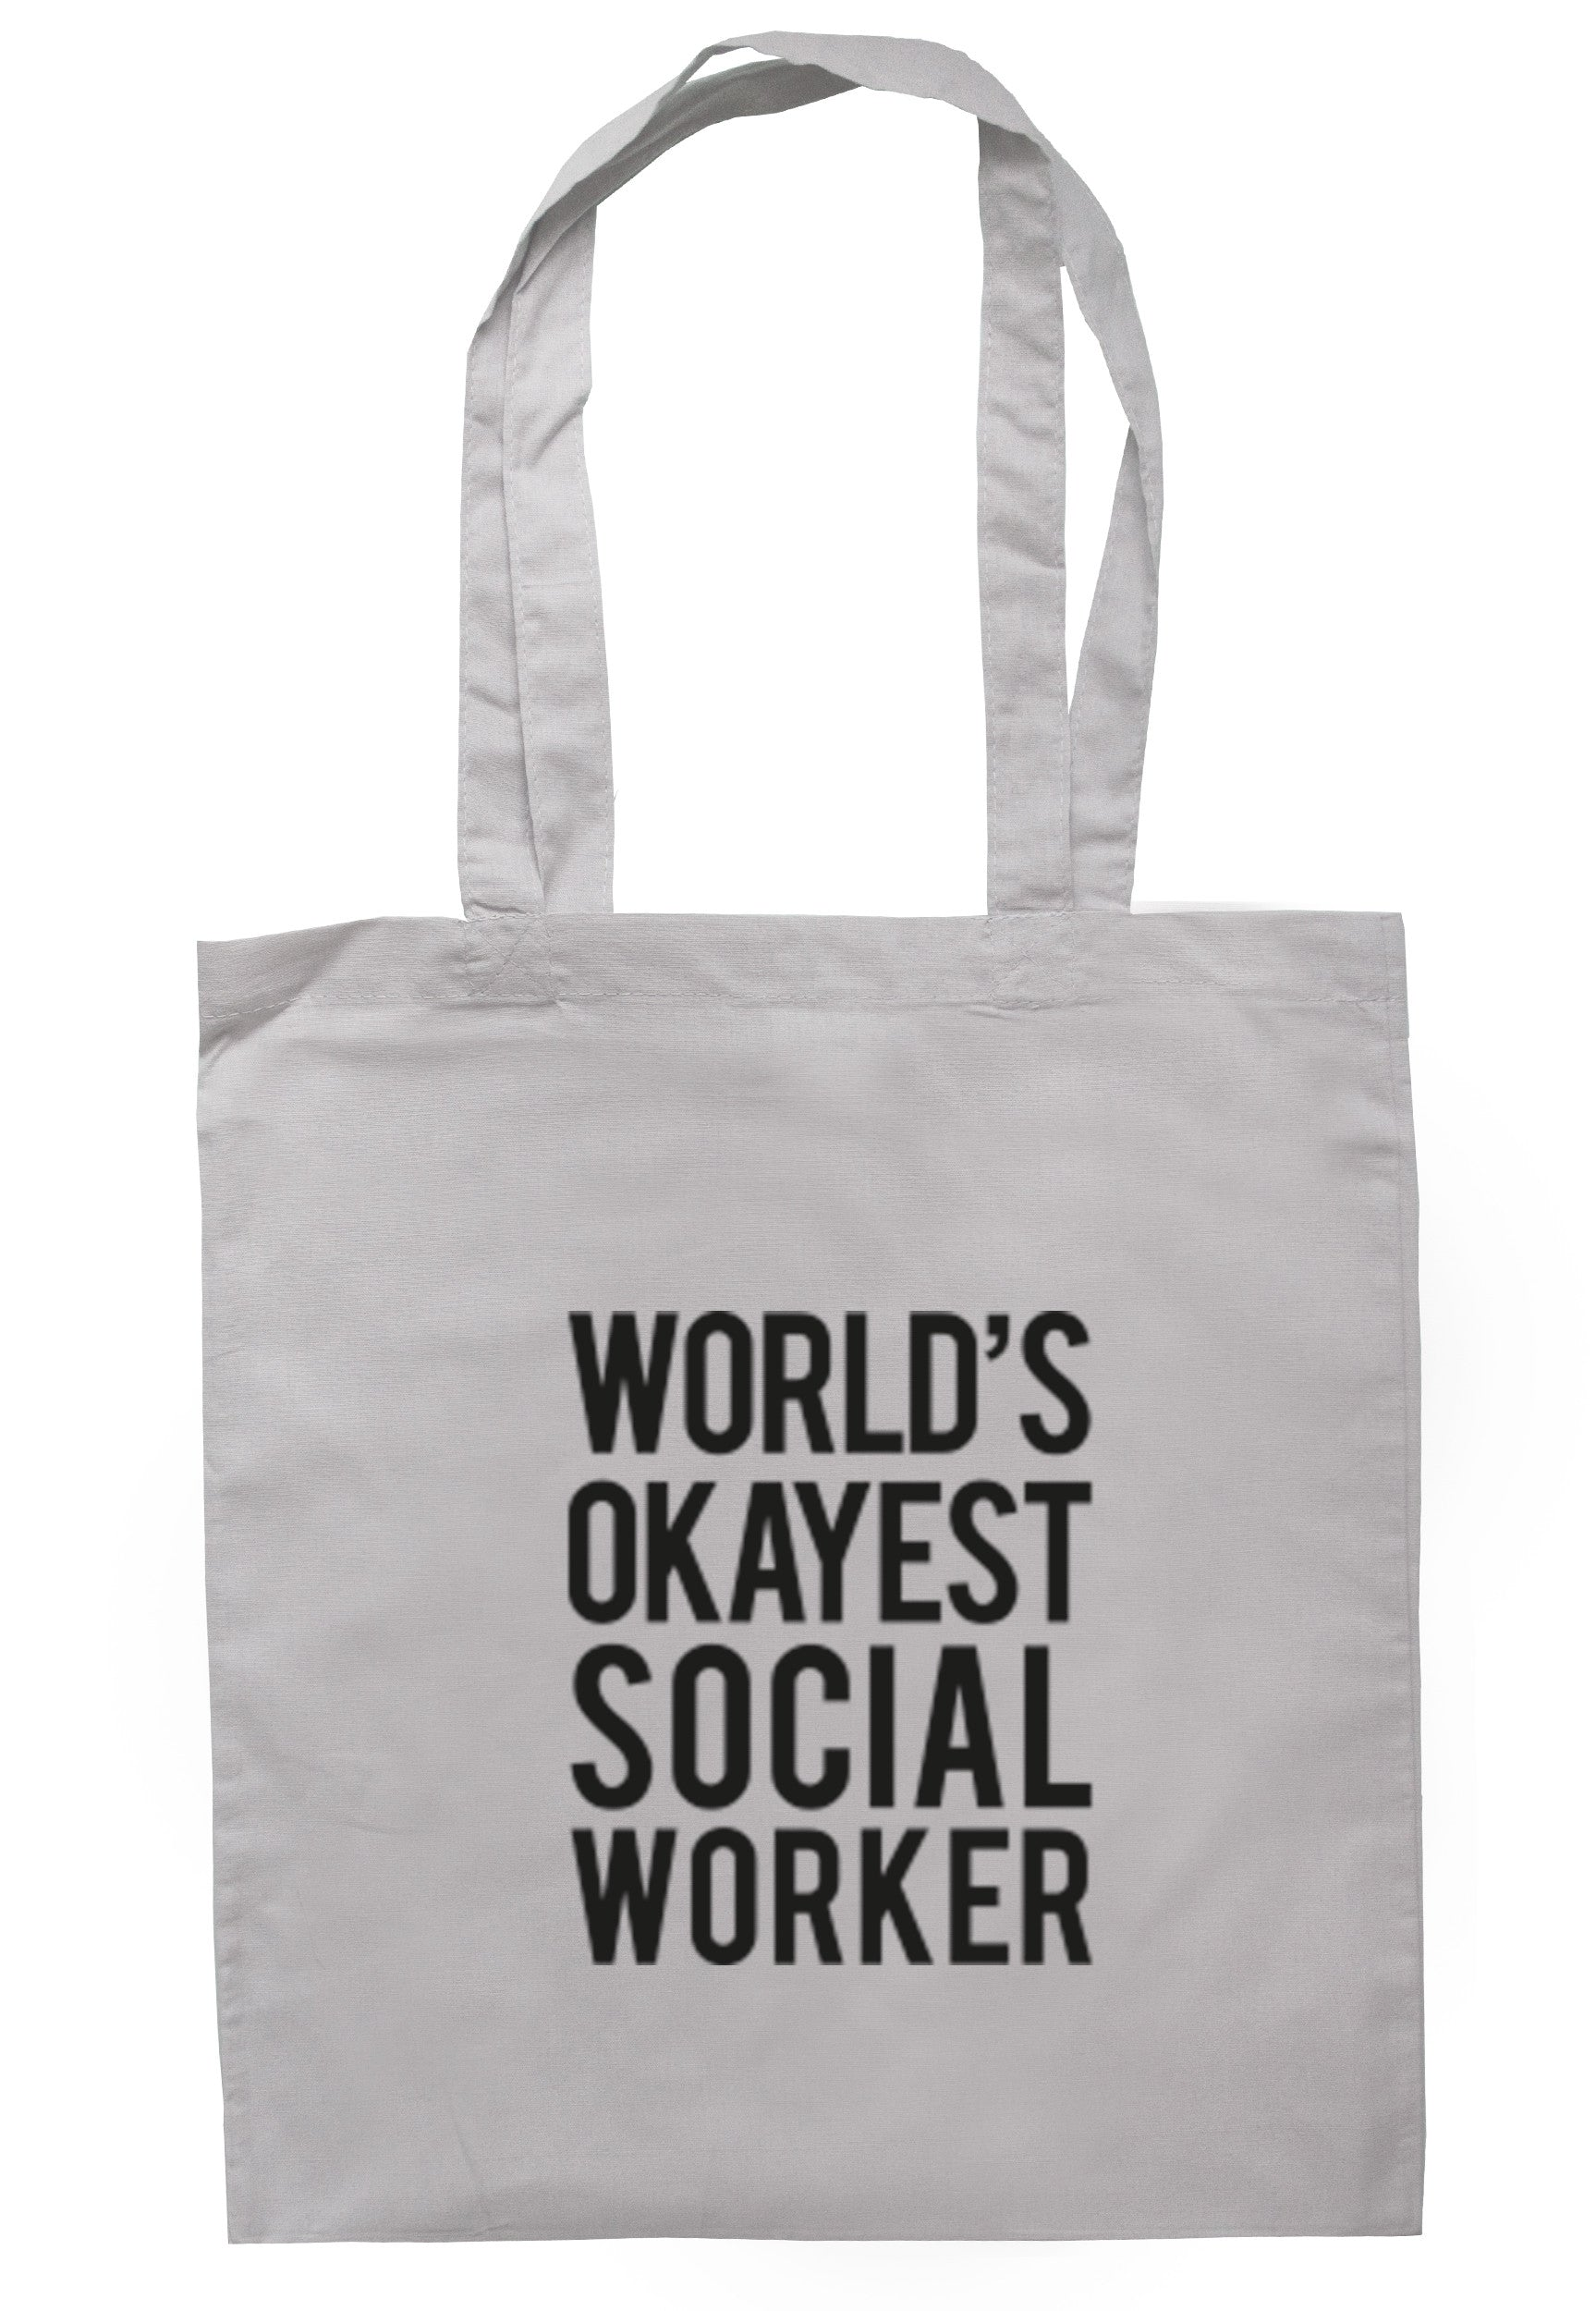 Worlds Okayest Social Worker Tote Bag TB0296 - Illustrated Identity Ltd.